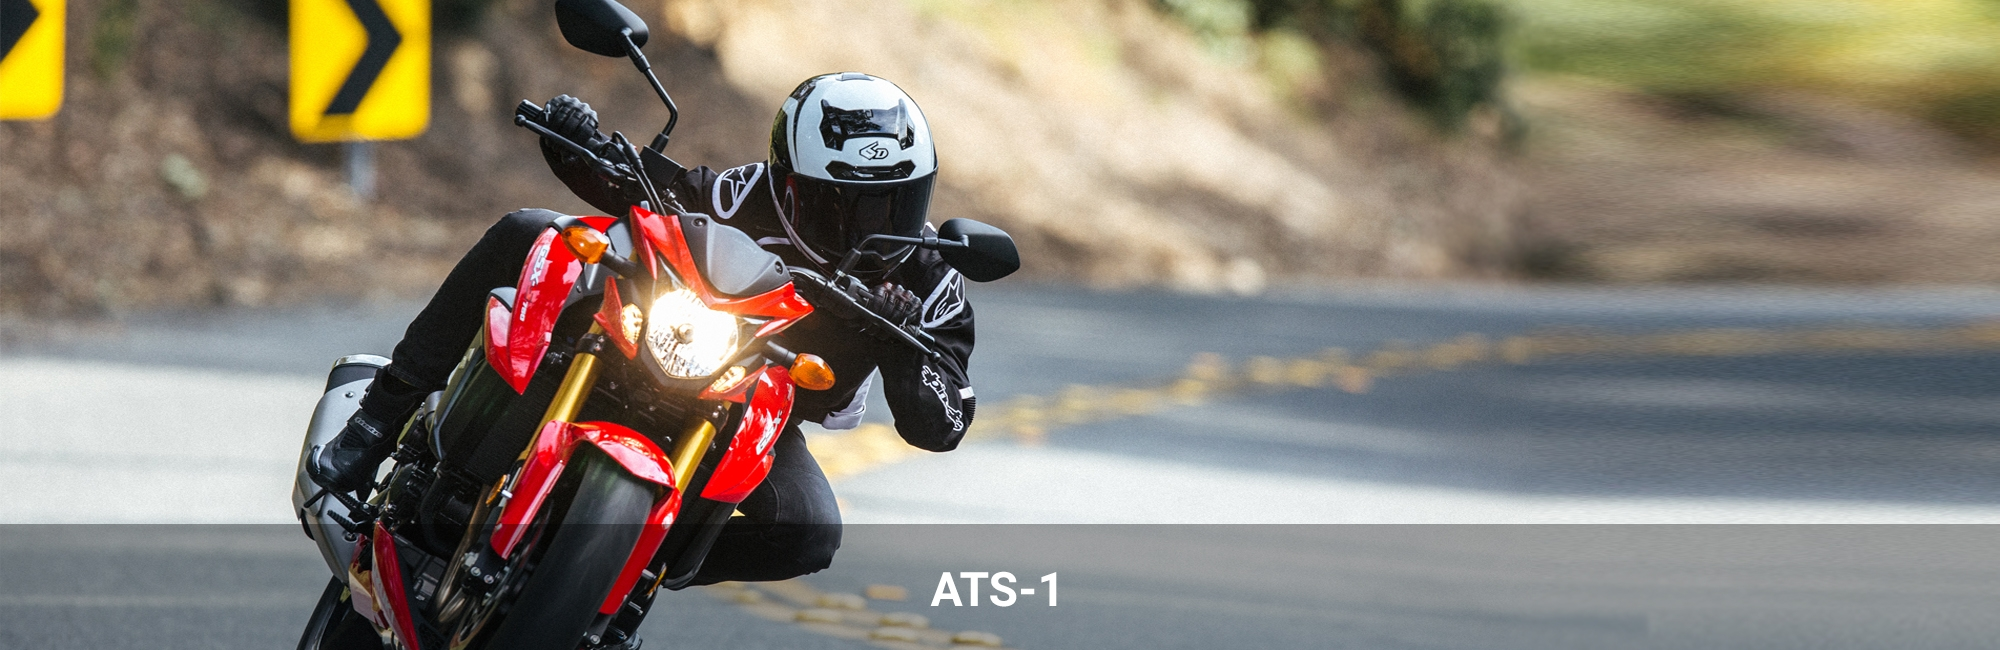 ATS-1 Cover